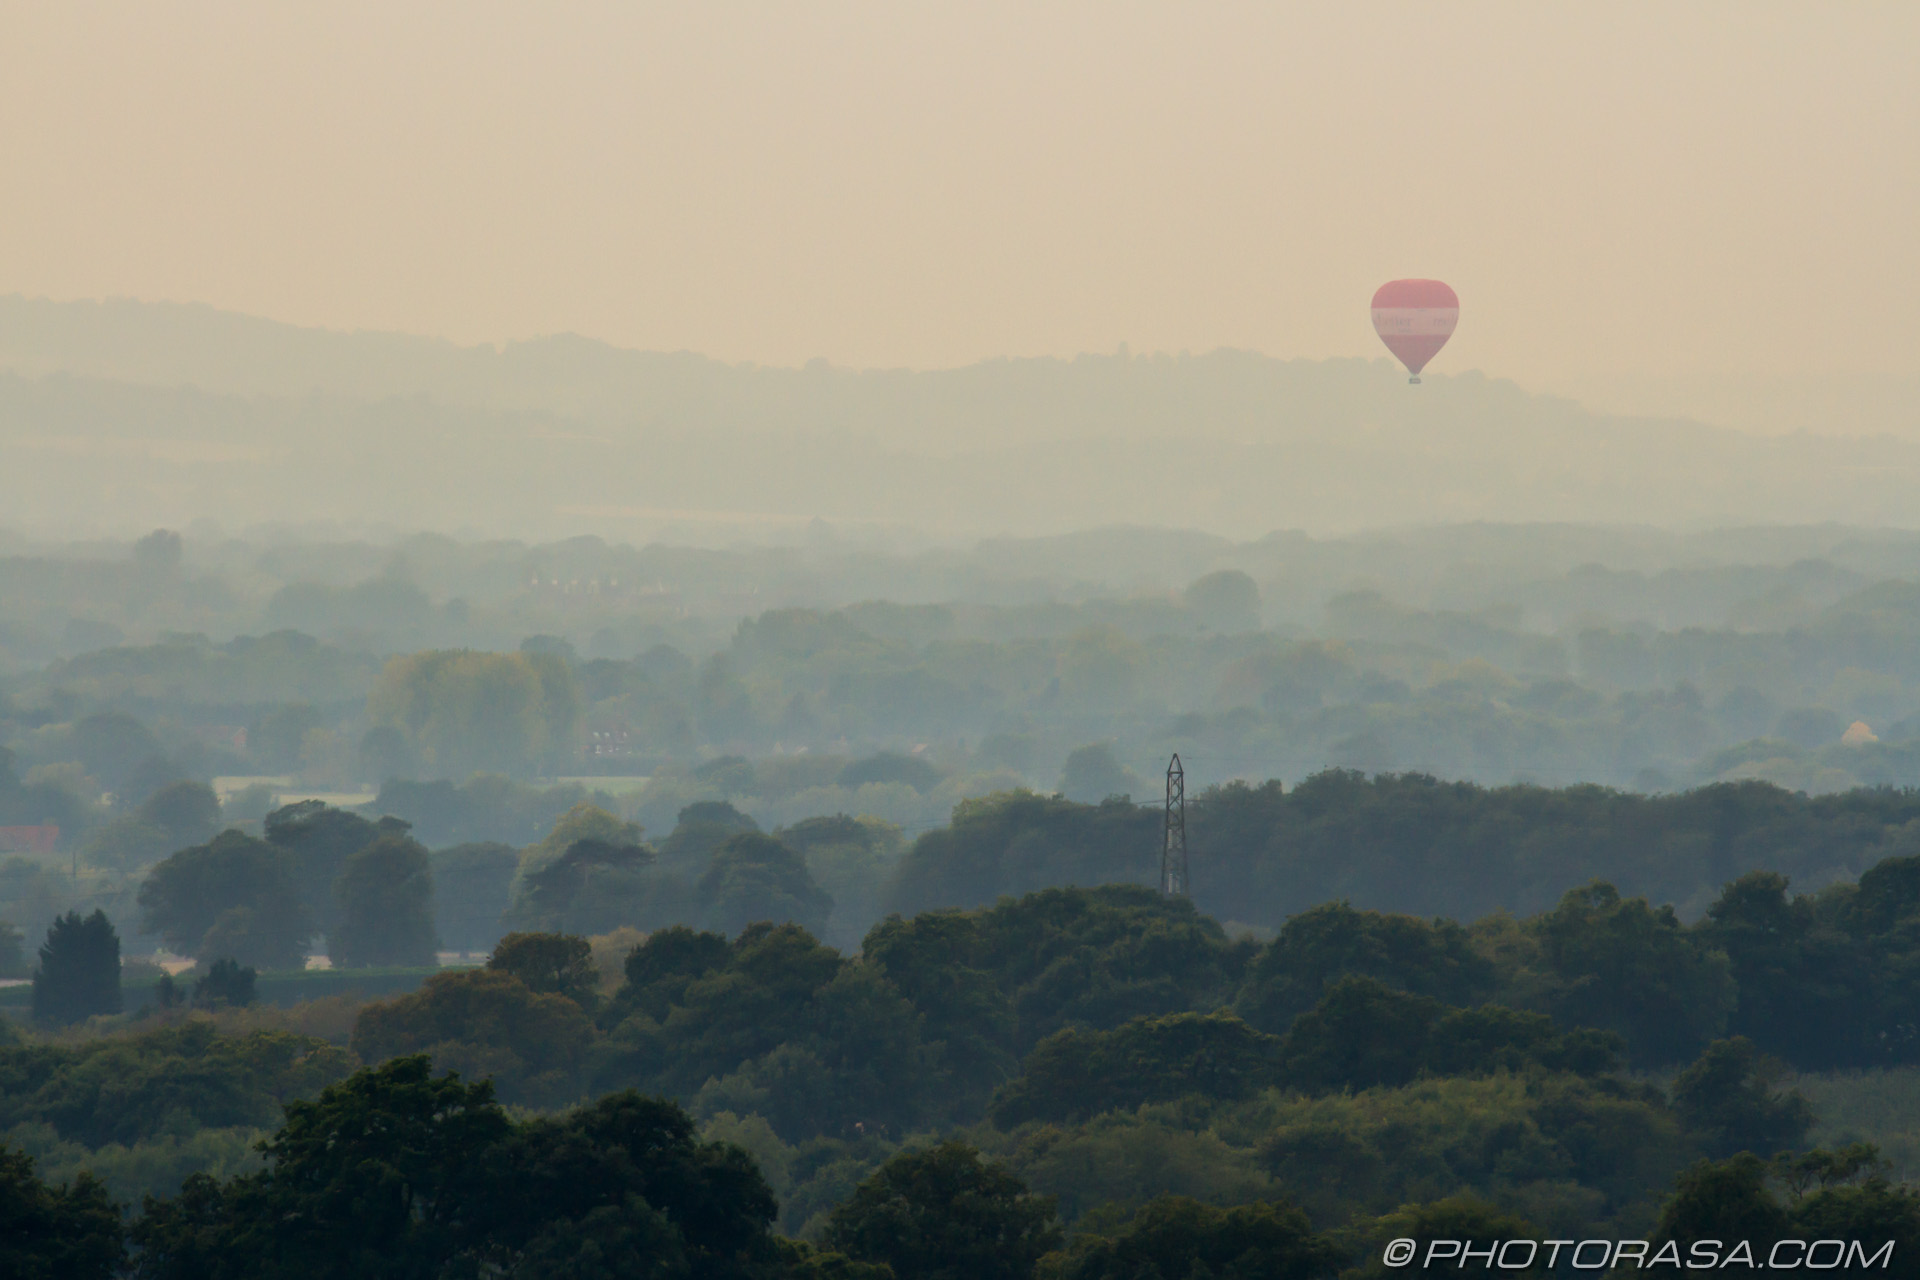 http://photorasa.com/balloons-evening-sky/red-air-balloon-over-misty-woodland/